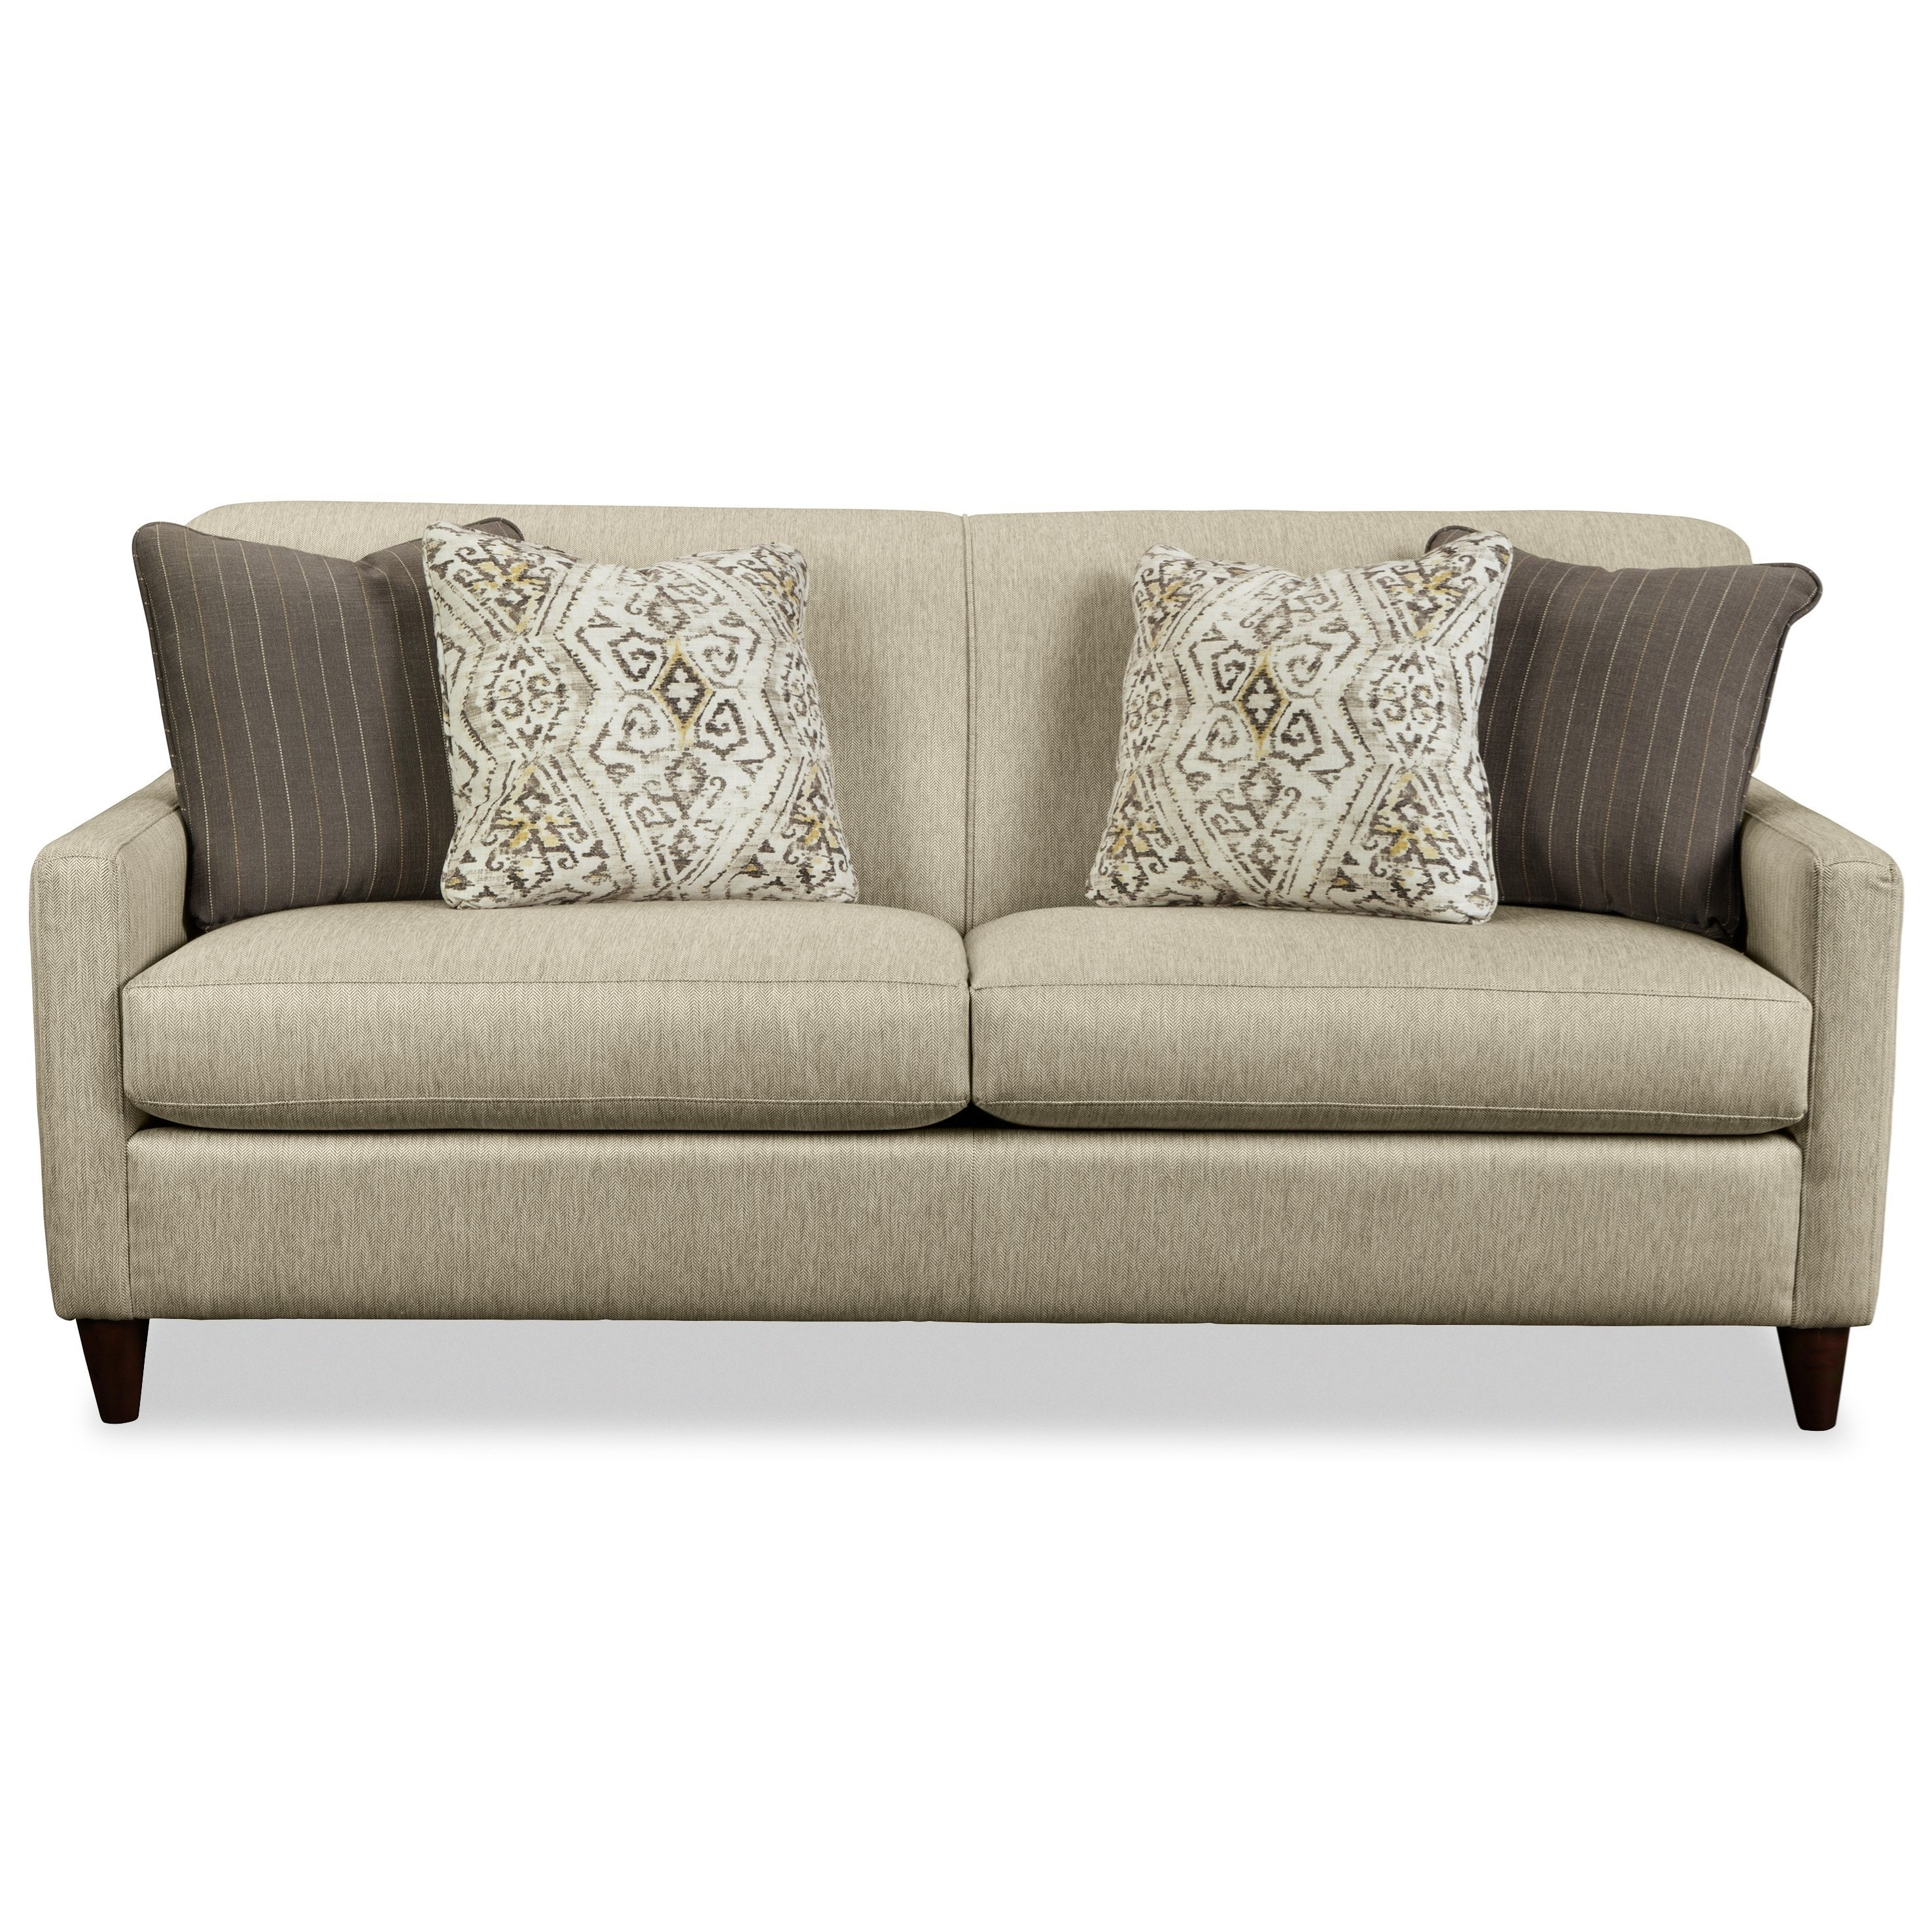 Contemporary Apartment-Size Sofa with Four Pillows by Craftmaster ...